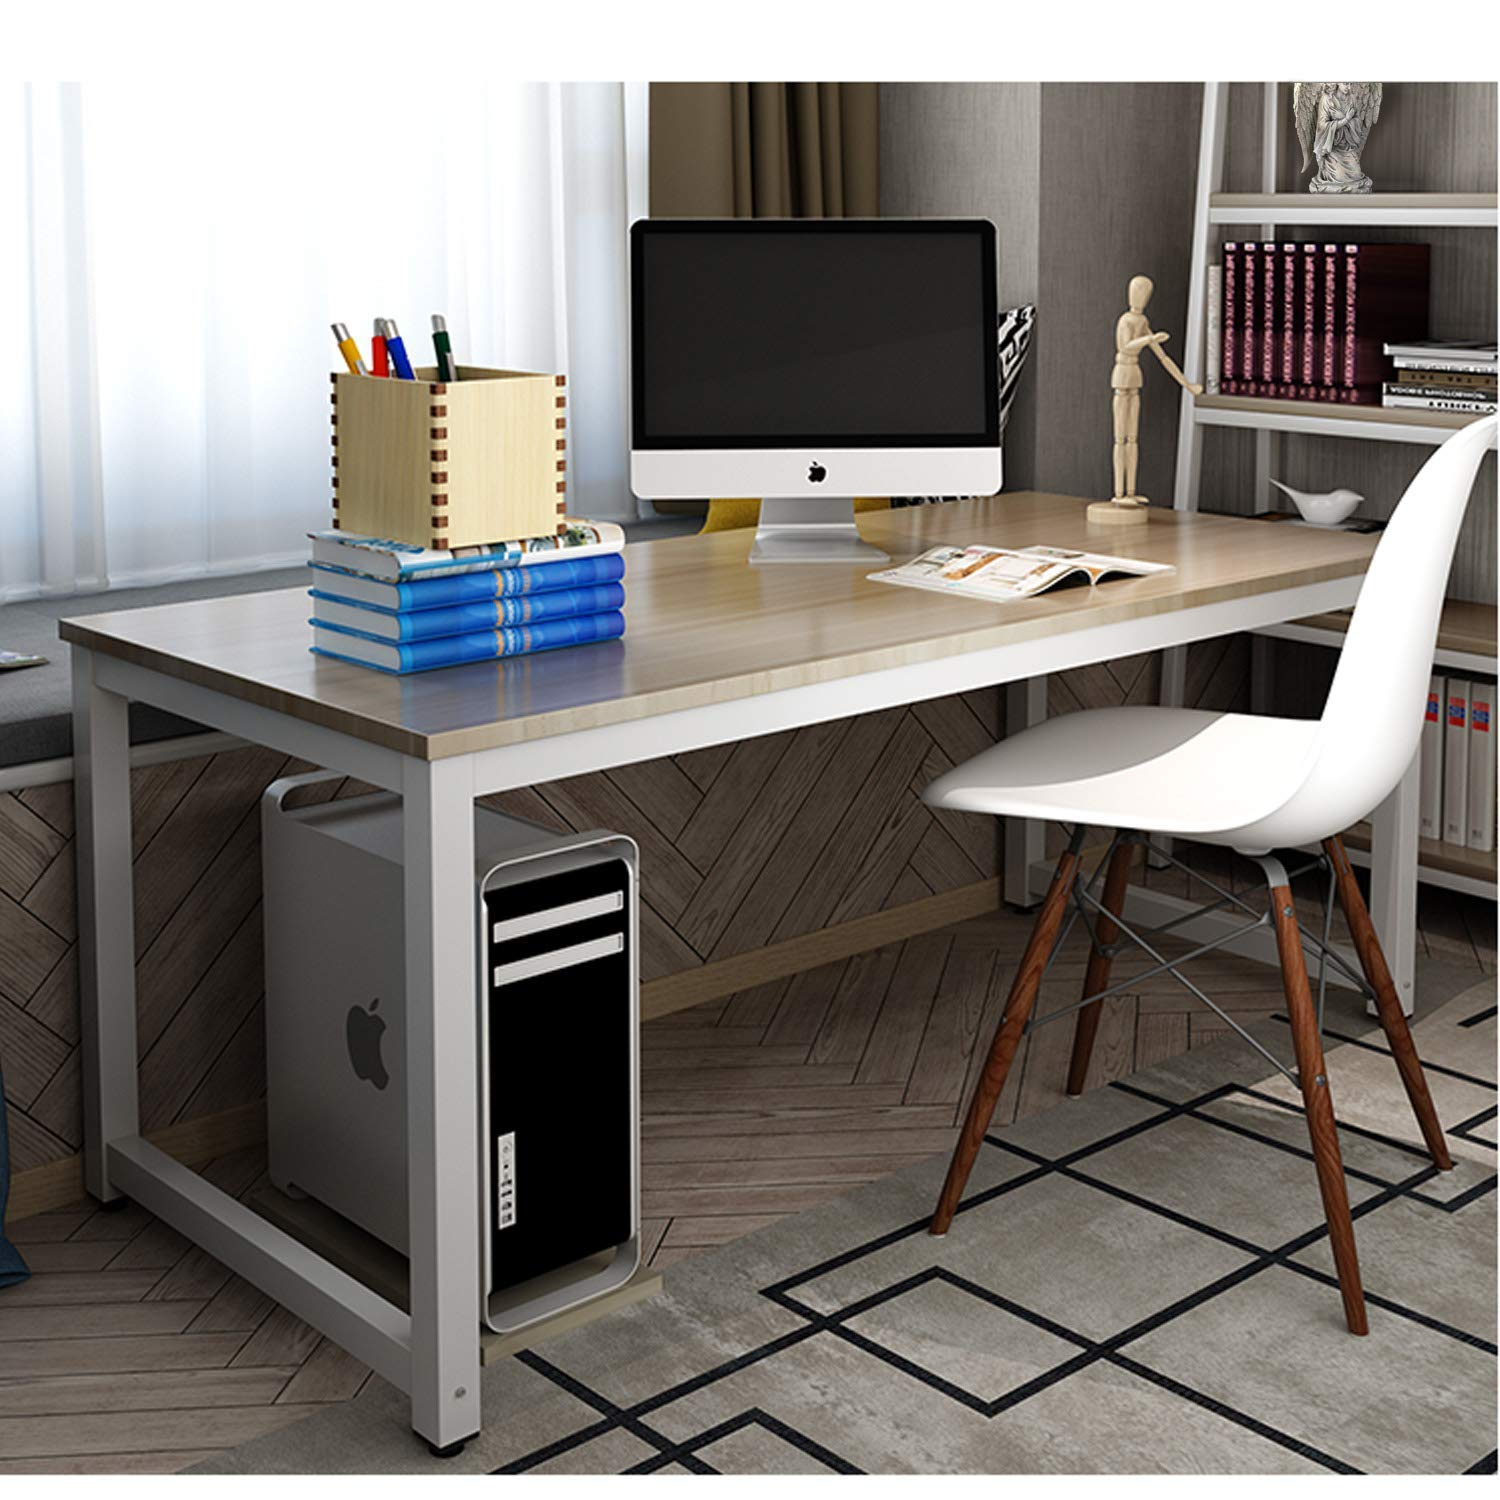 Amazon com long world 47 computer table study writing desk office desk rectangular table pc desk gaming desk for workstation home office wood metal